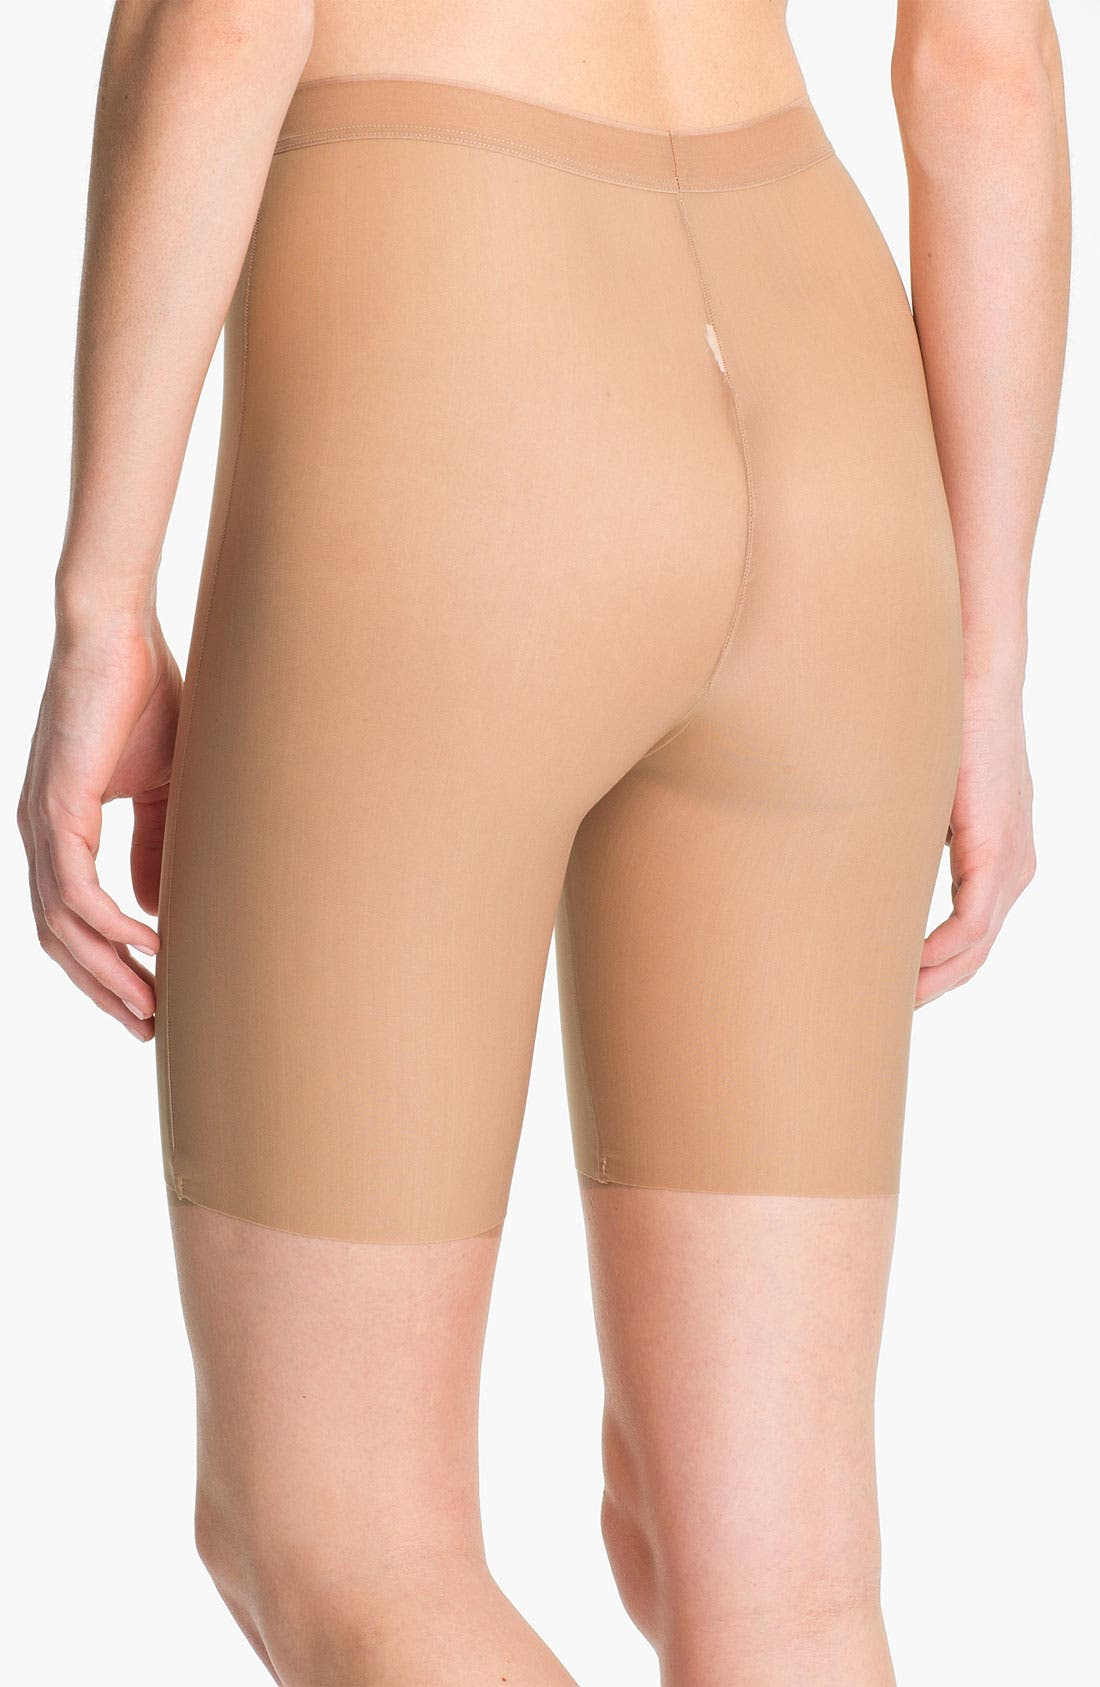 Alternate Image 2  - Wacoal 'Smooth Complexion' Mid-Thigh Shaper Briefs